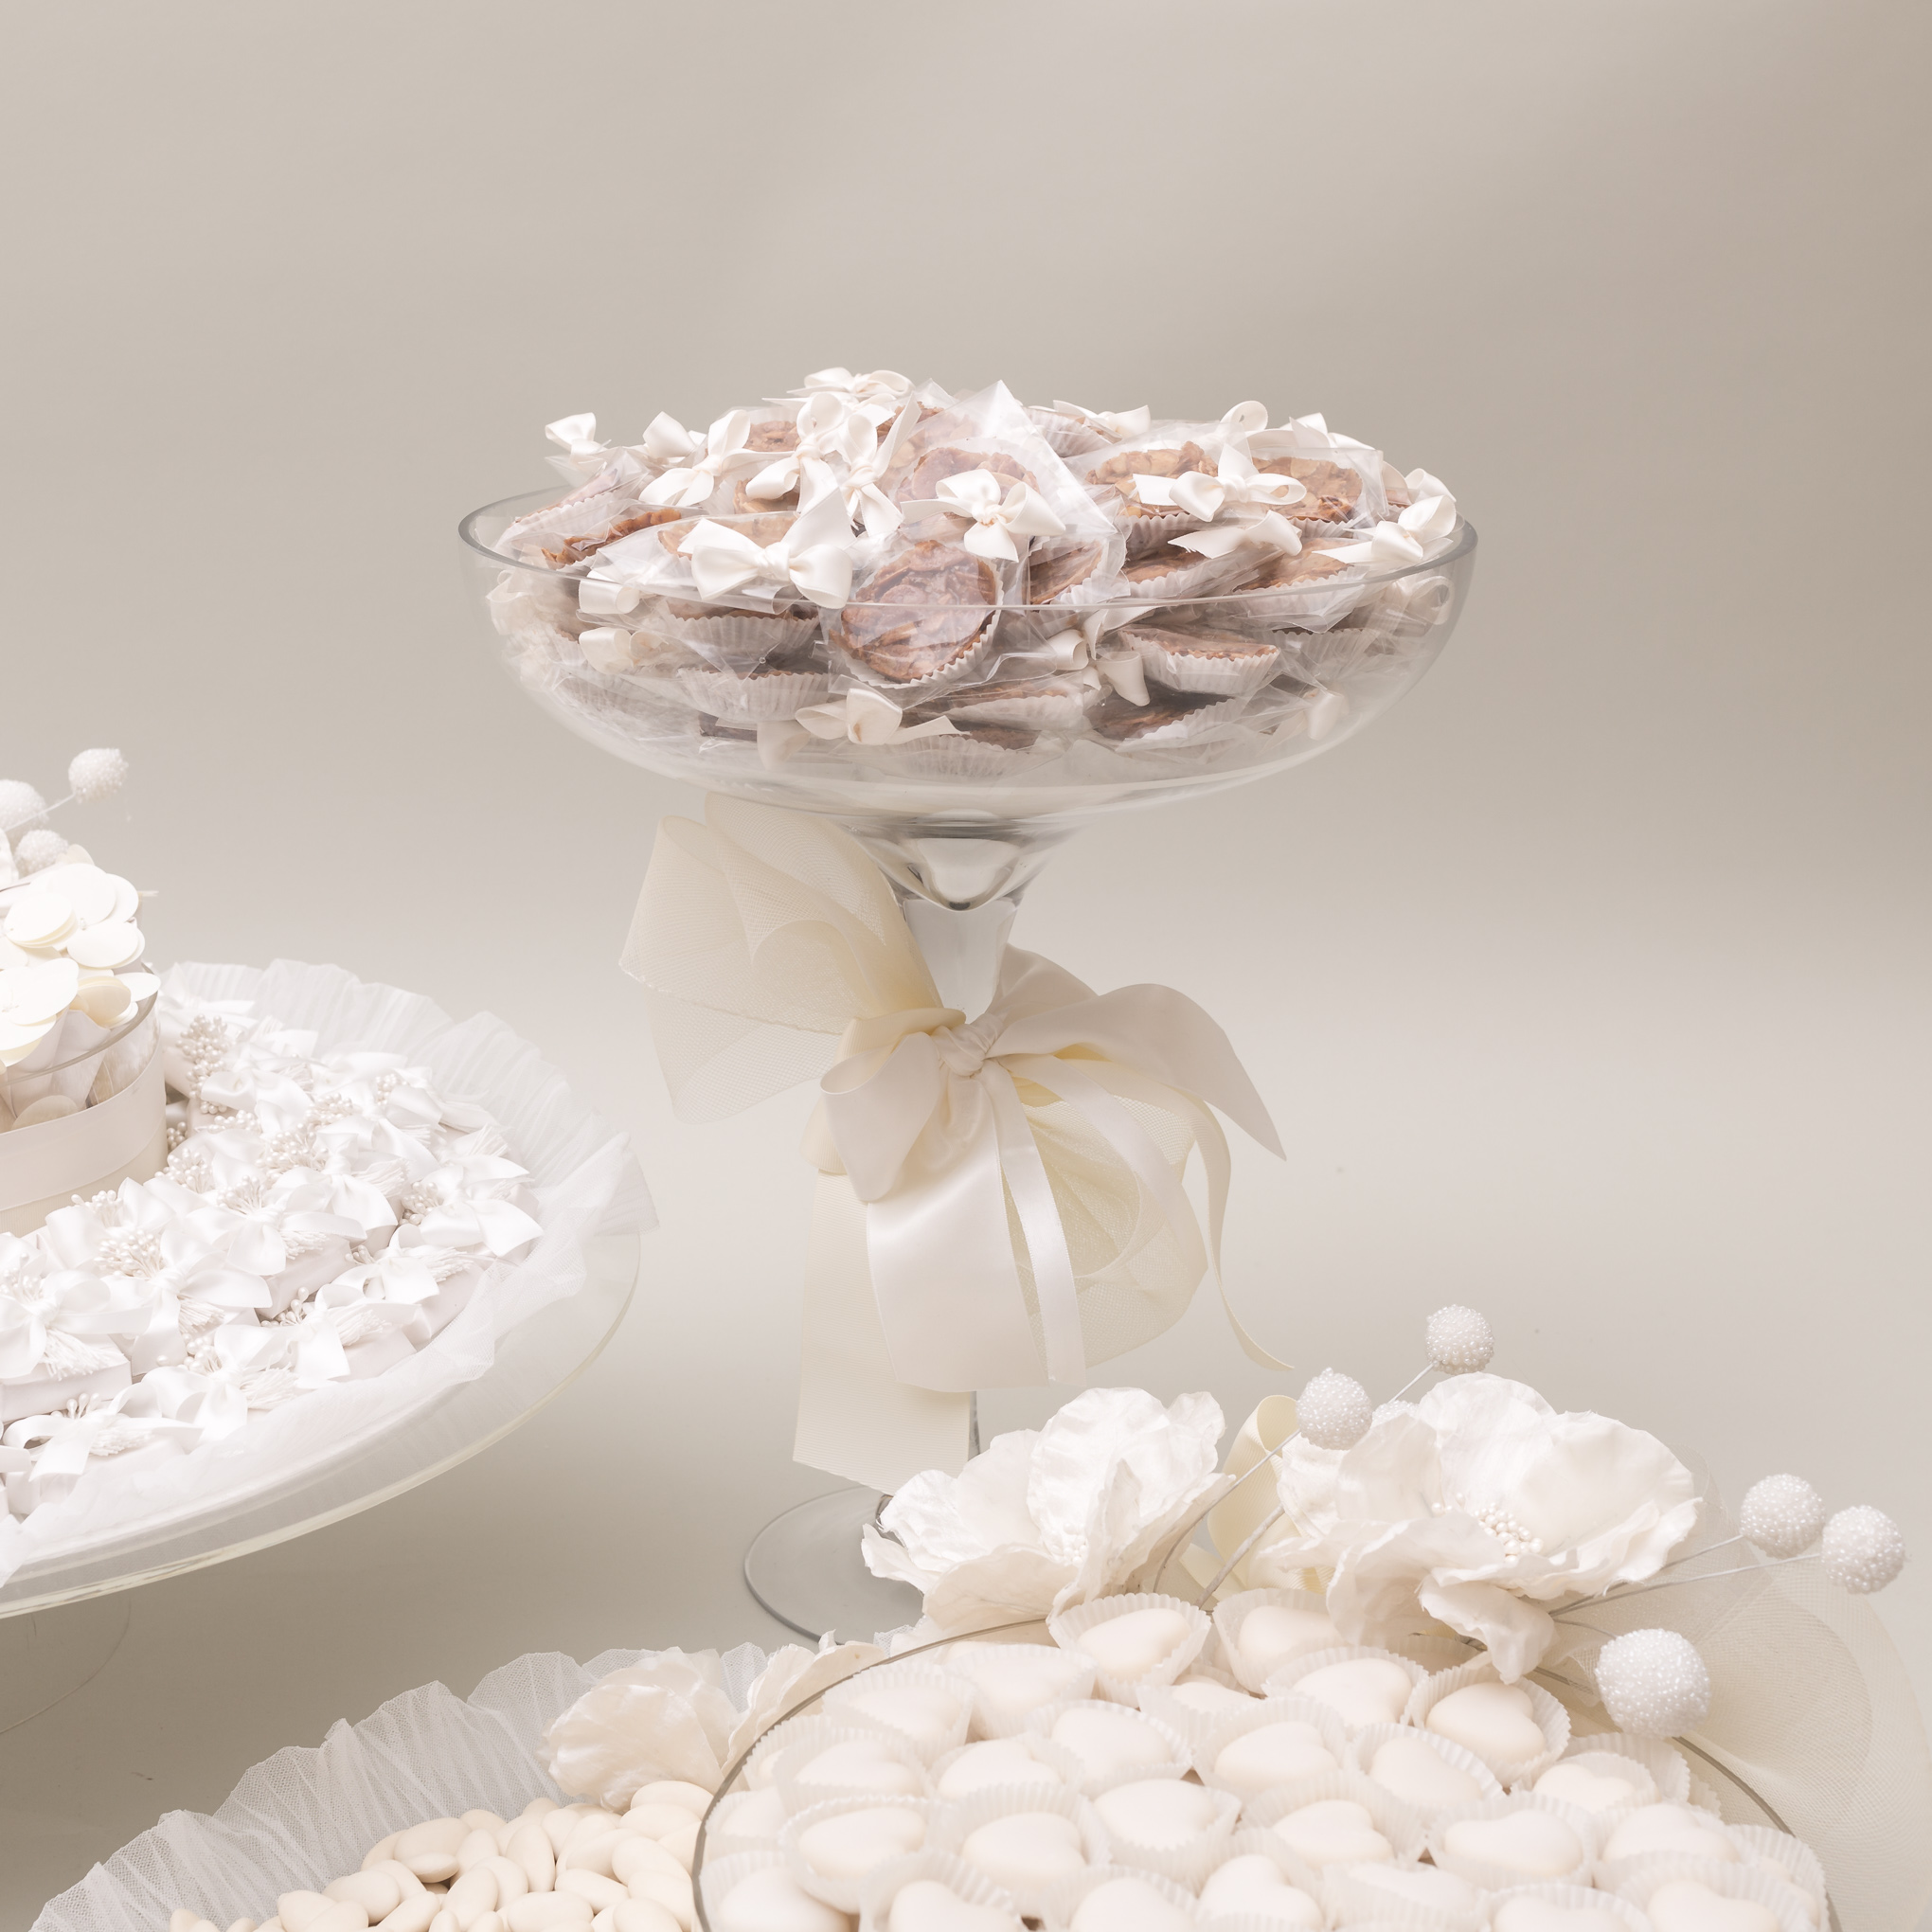 Nothing says Bridal better than Ivory colors, silky textures and delicately handmade flowers!